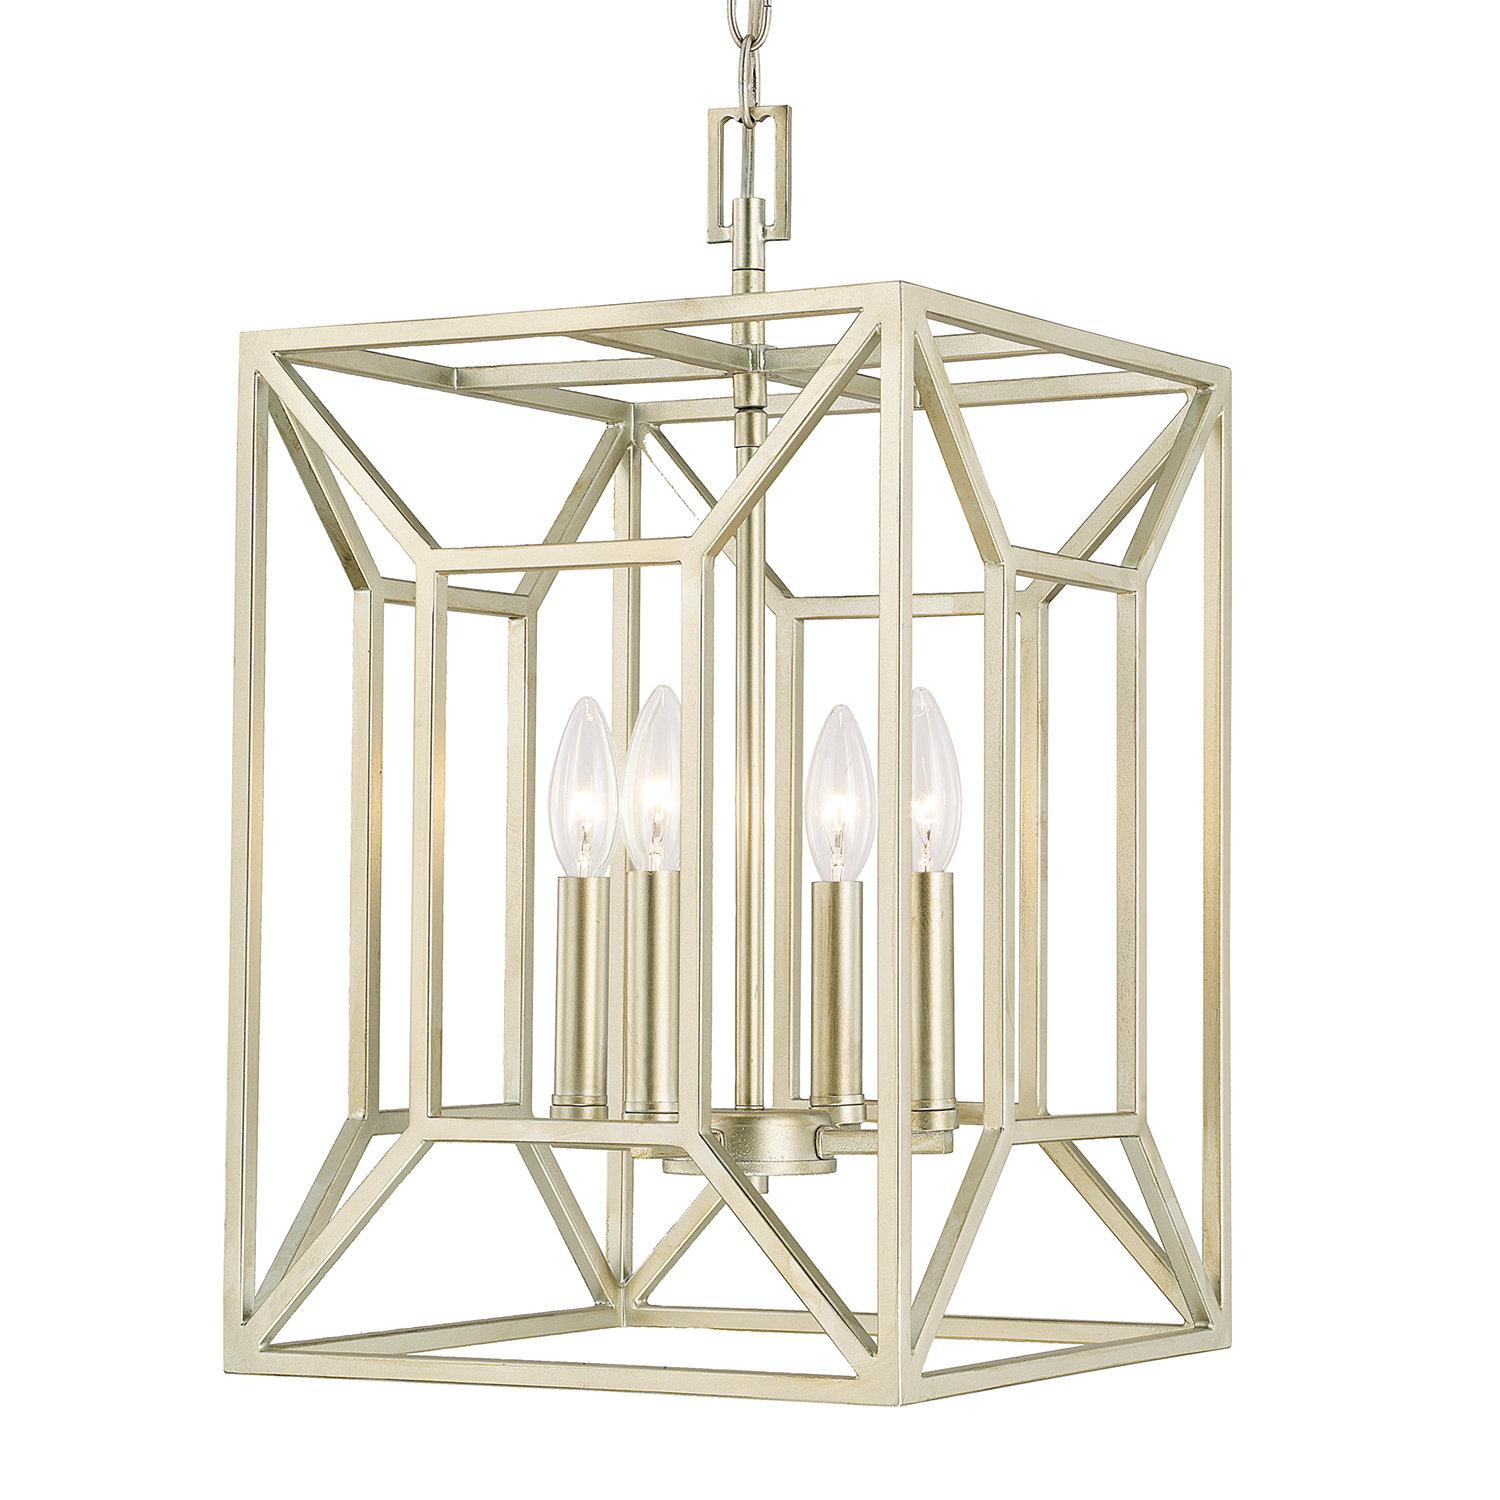 Missy 4 Light Single Square Pendant With Regard To William 4 Light Lantern Square / Rectangle Pendants (View 17 of 30)